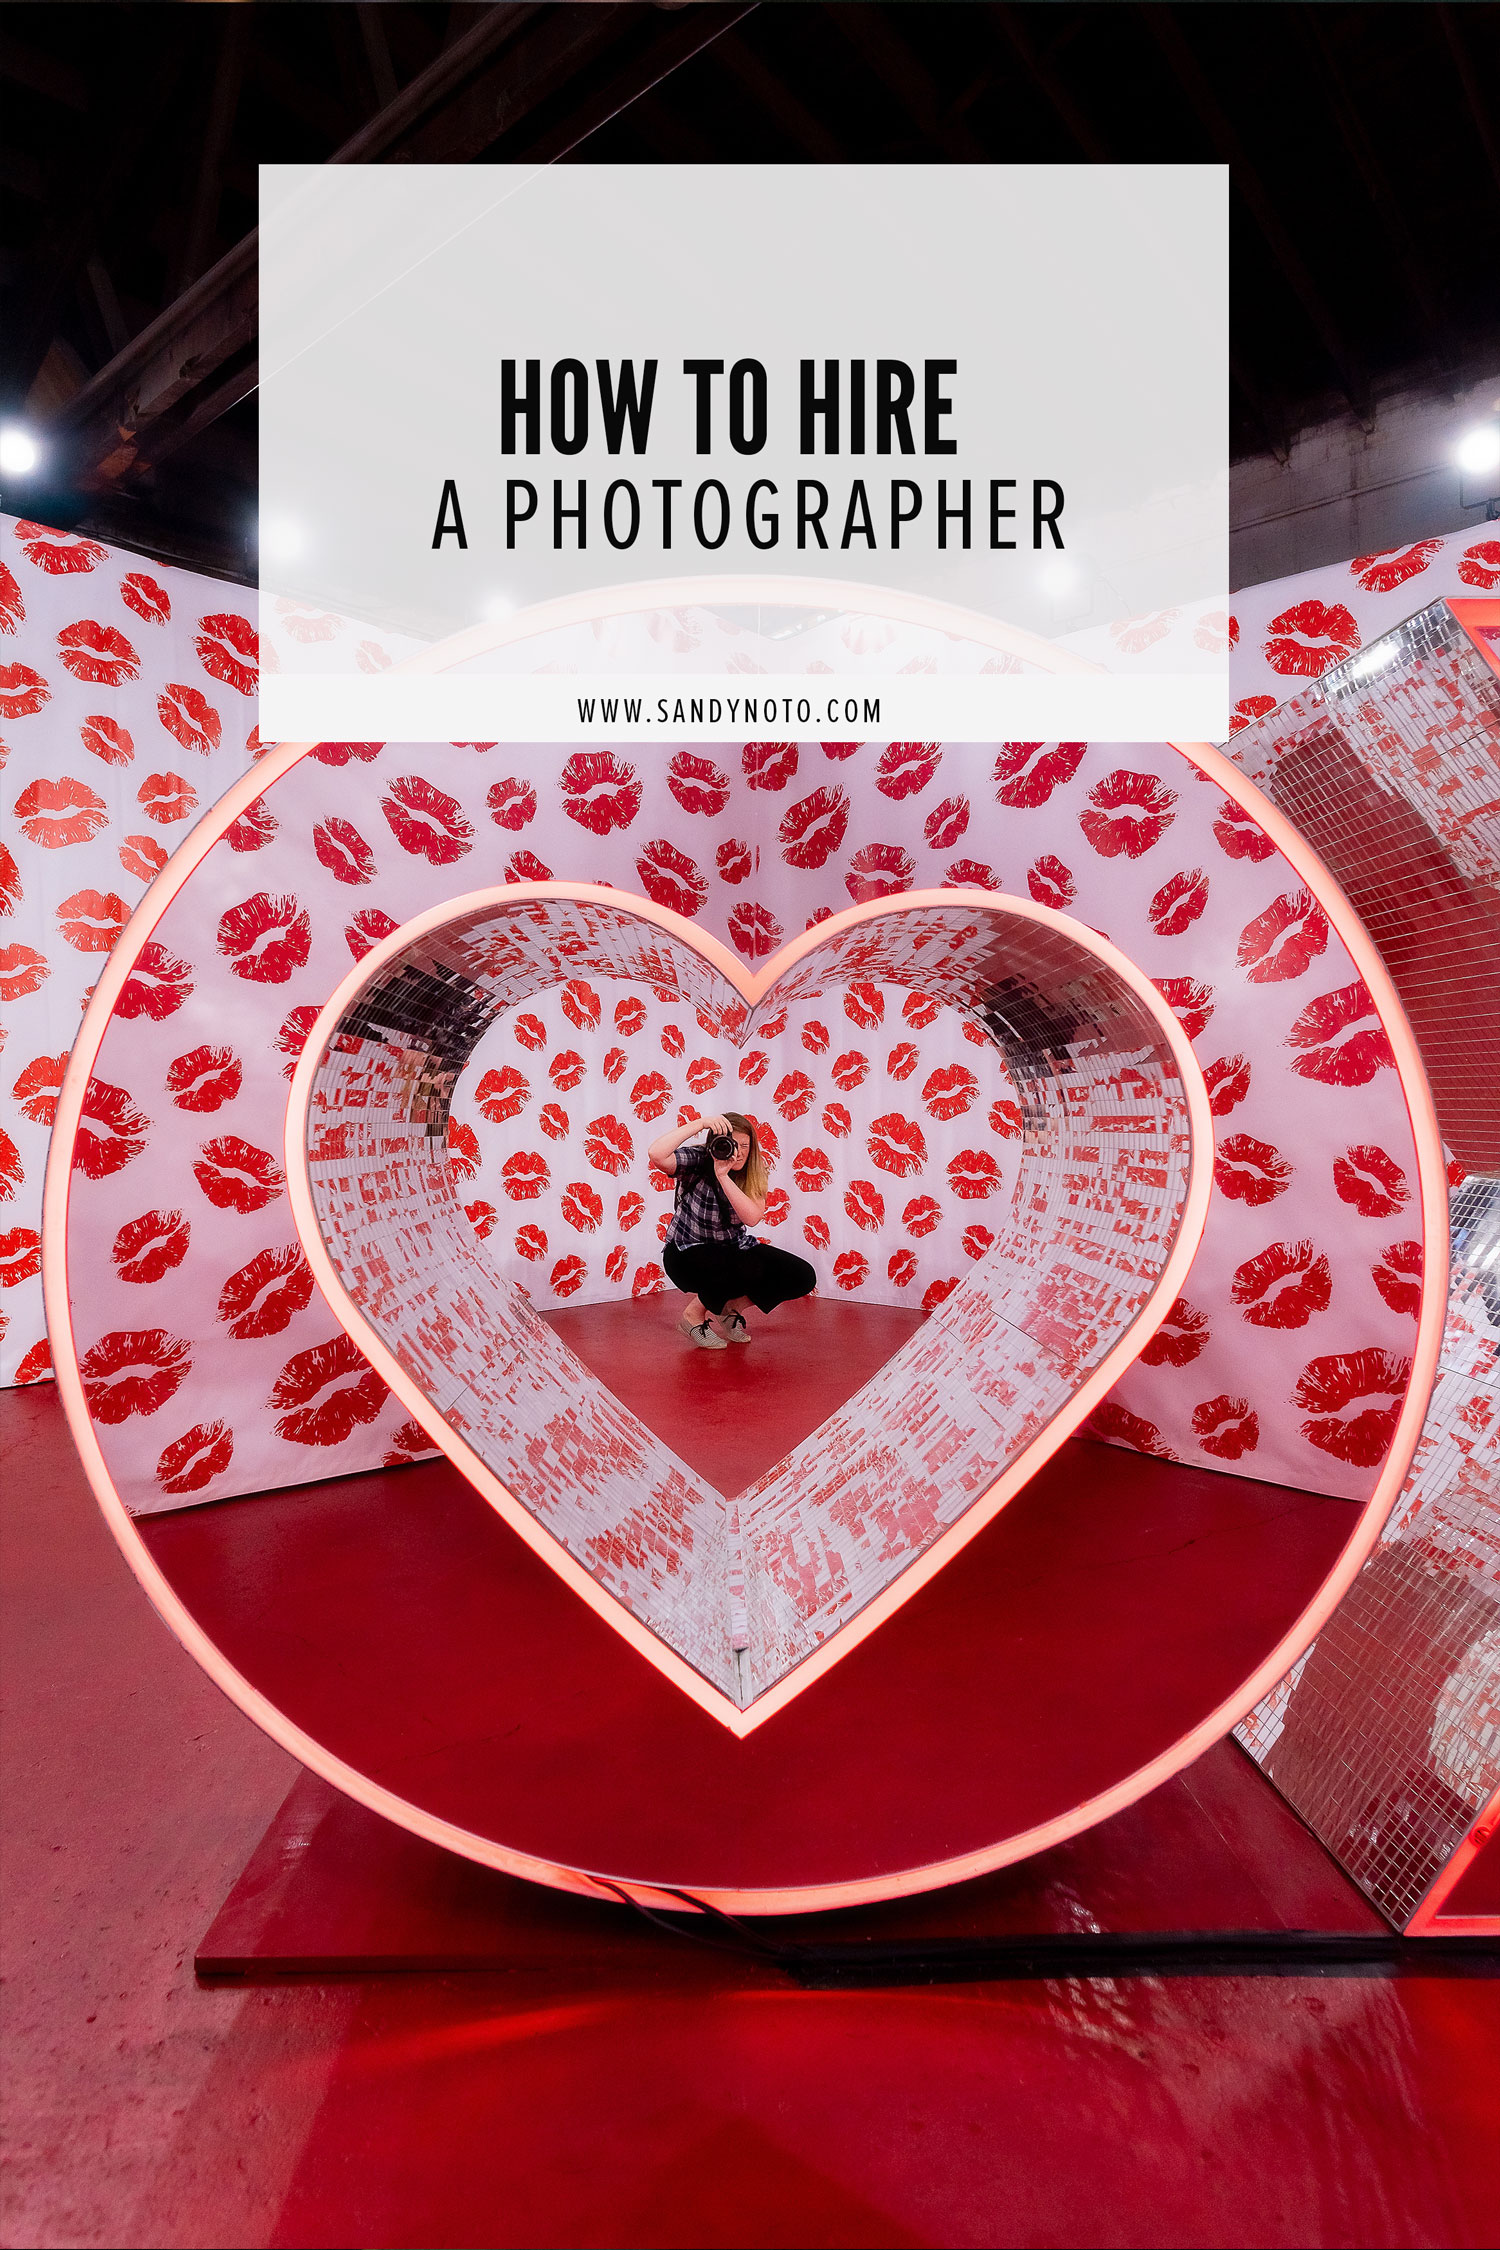 How to hire a photographer